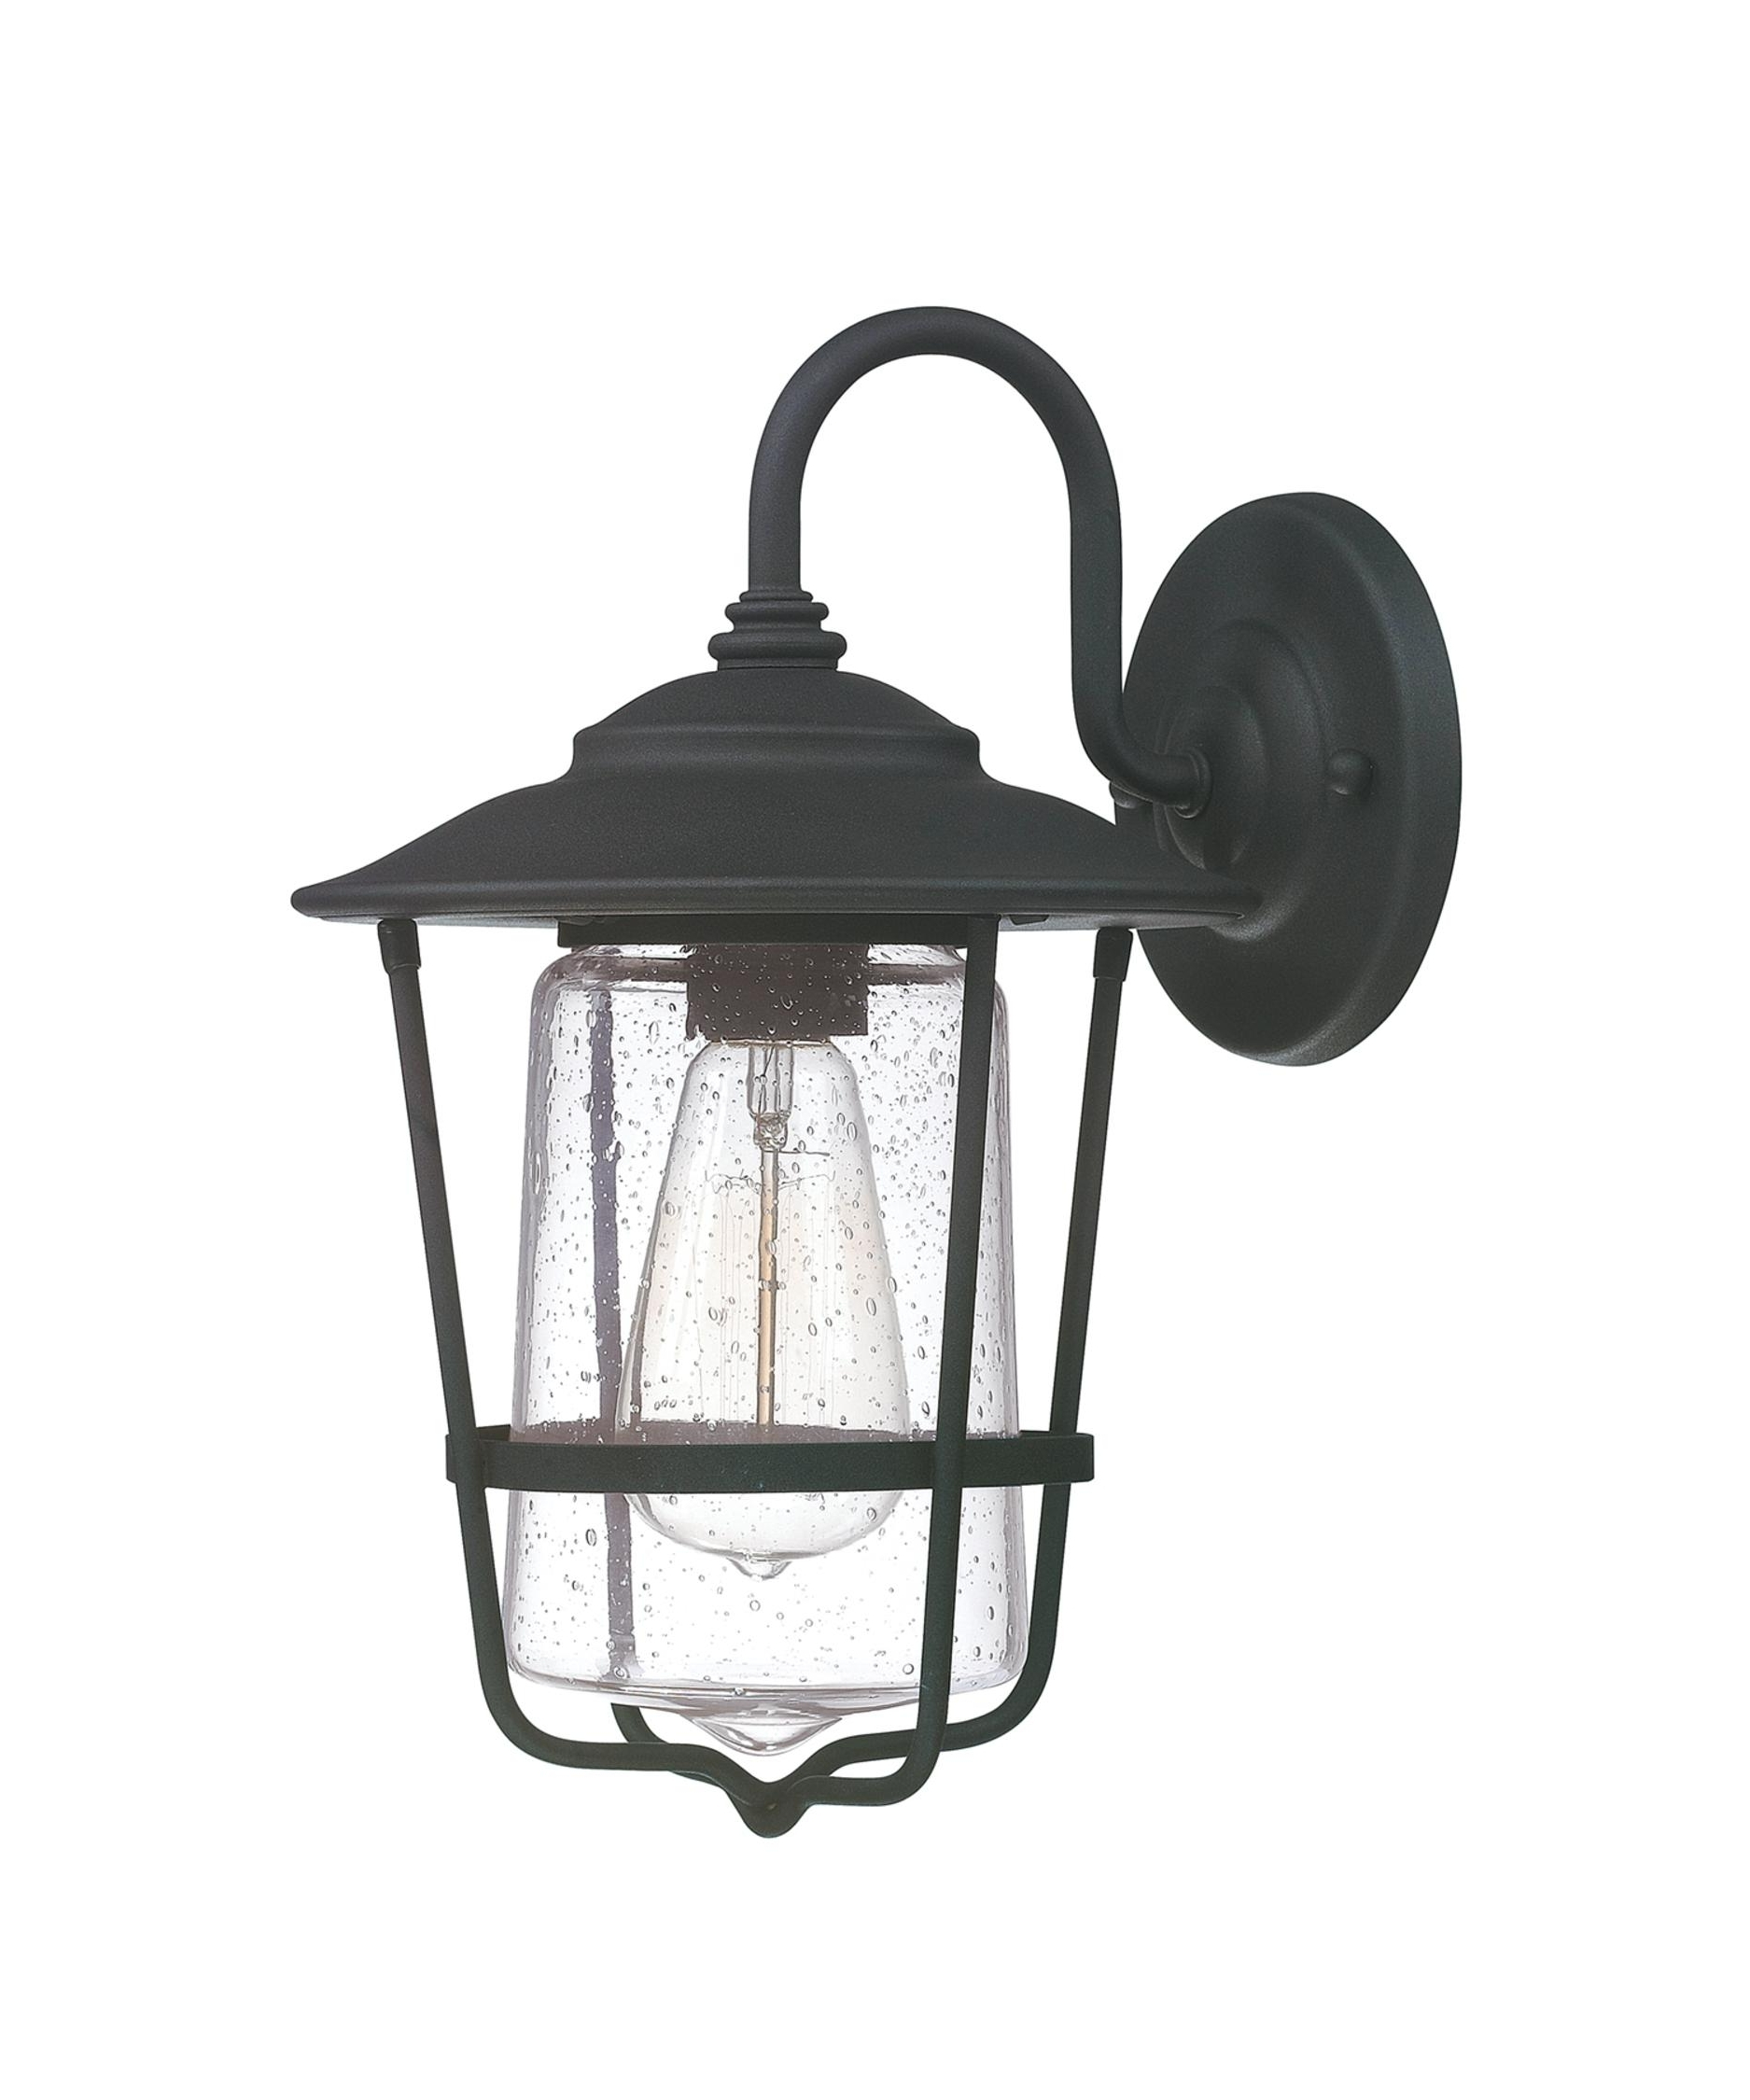 2019 Capital Lighting 9601 Creekside 8 Inch Wide 1 Light Outdoor Wall Intended For Outdoor Wall Lighting With Seeded Glass (View 17 of 20)